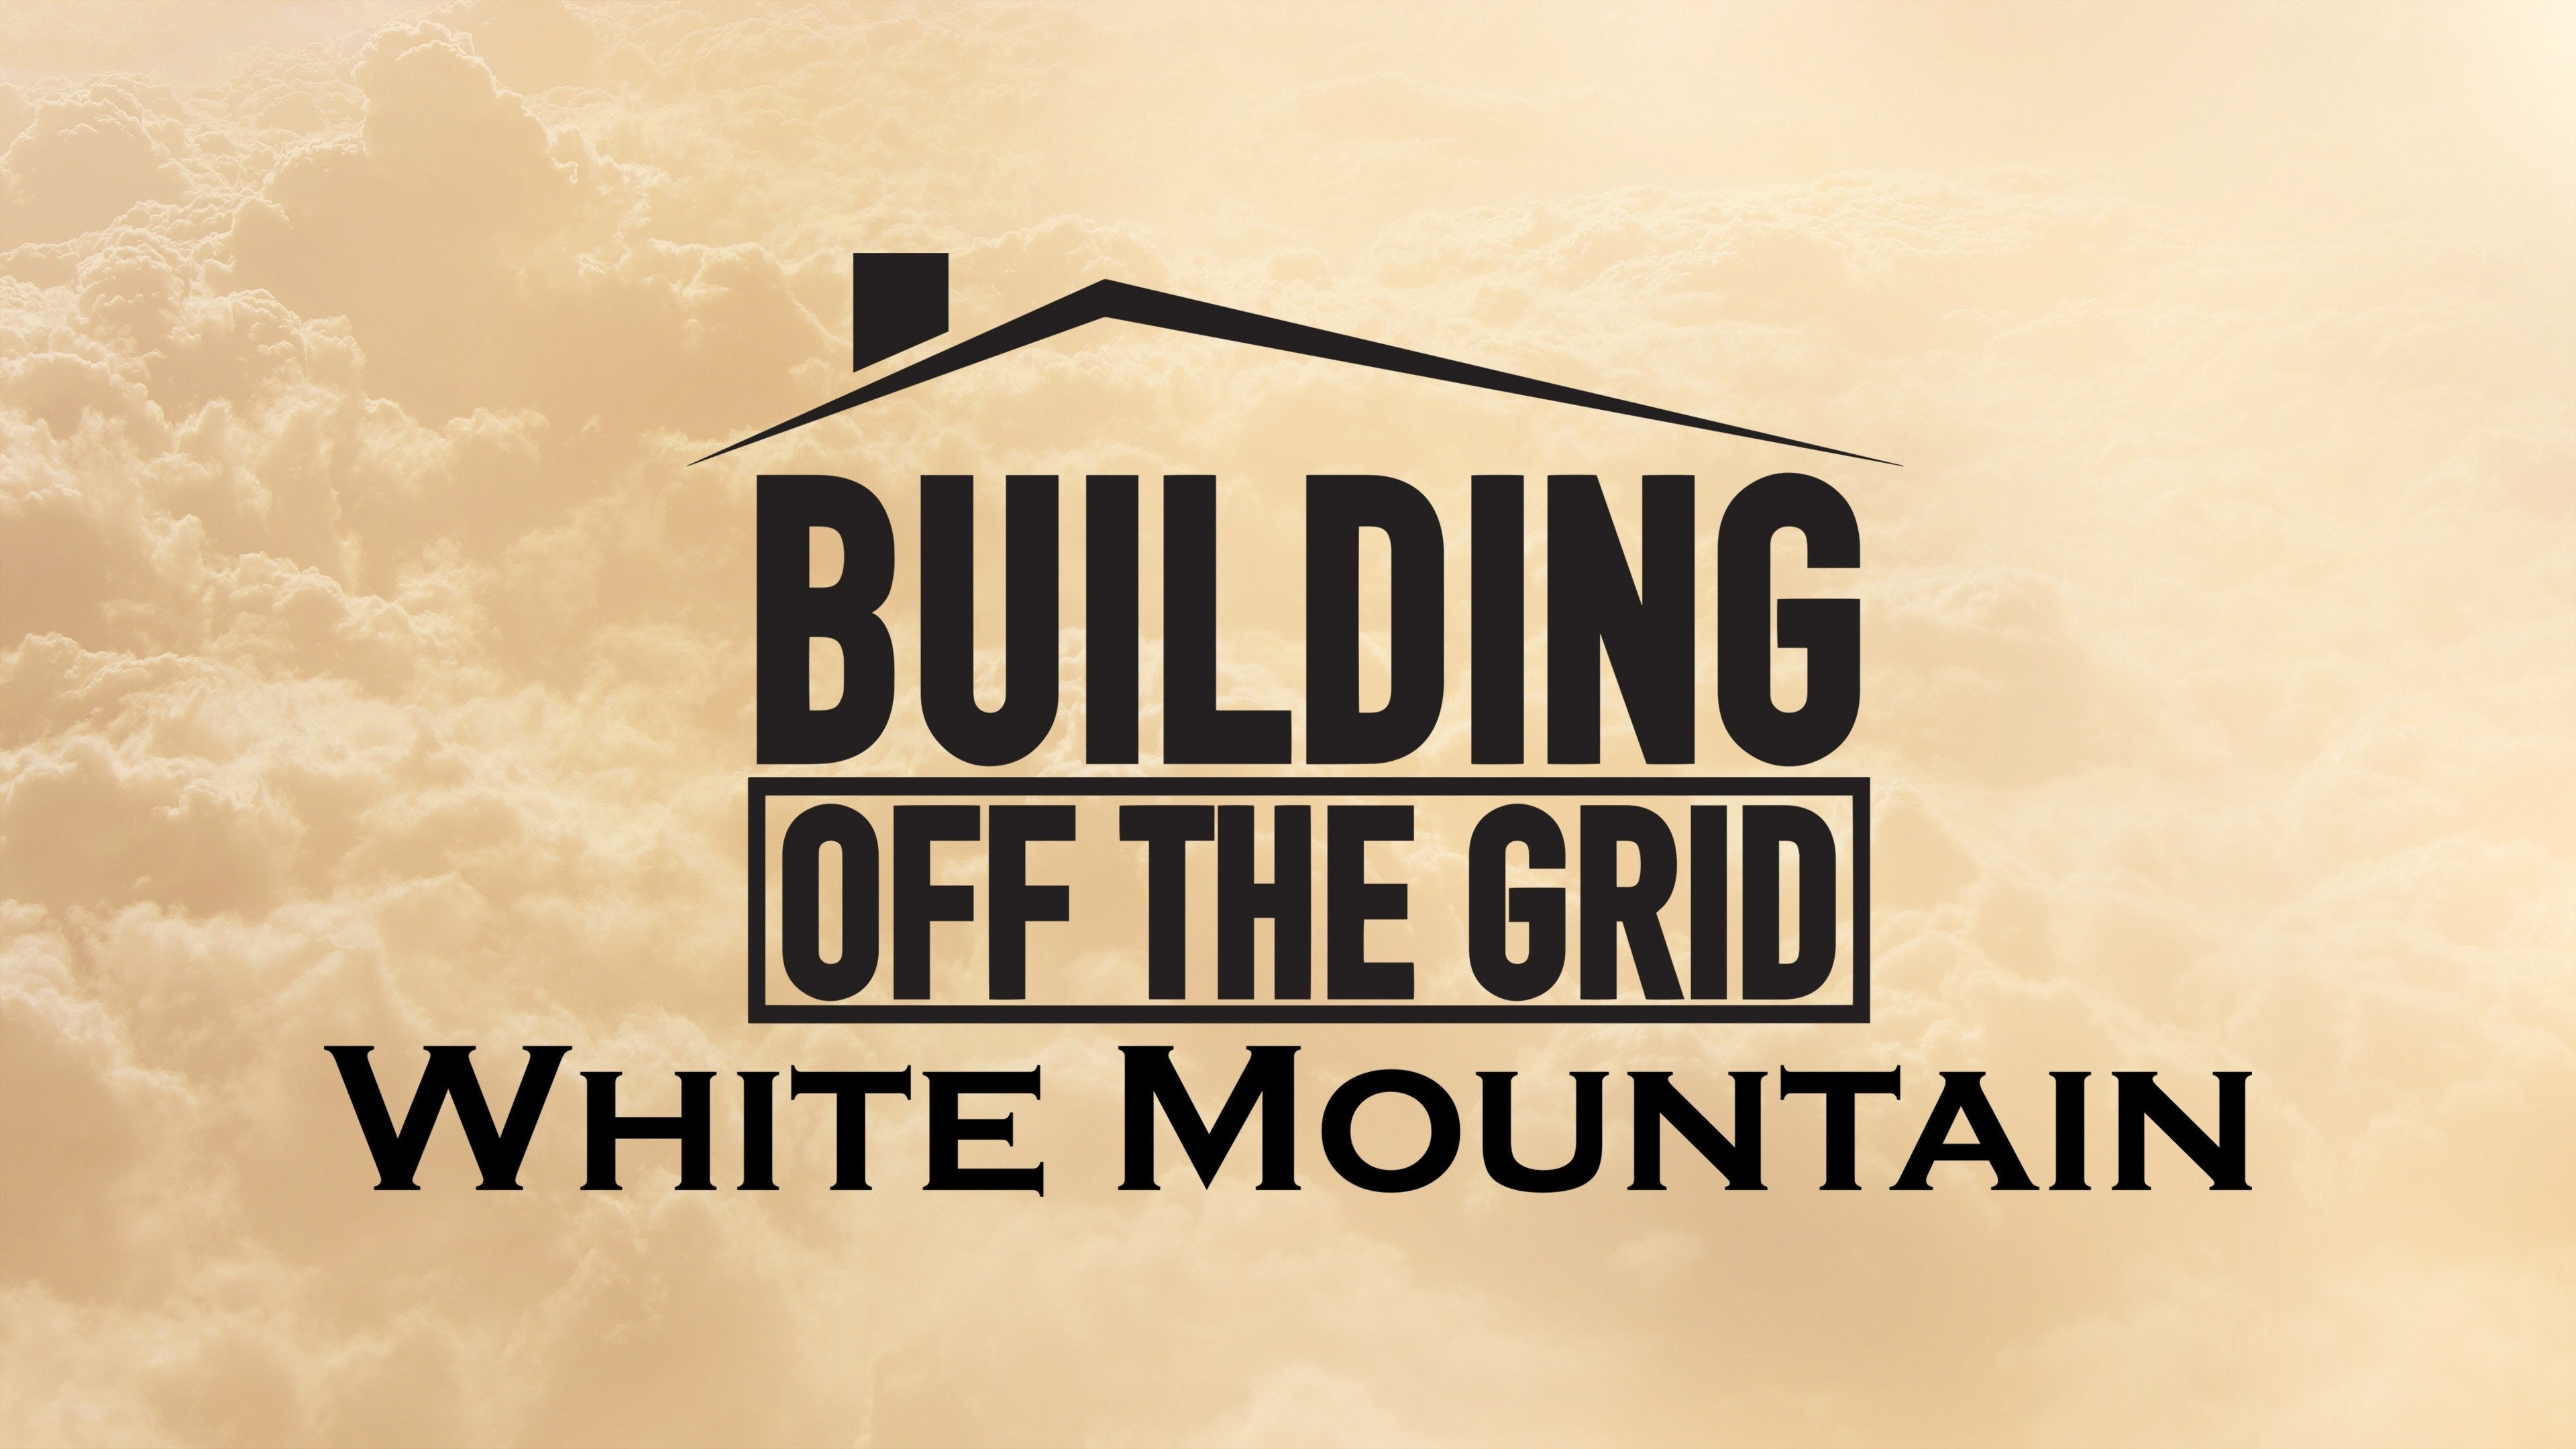 Building Off the Grid: White Mountain